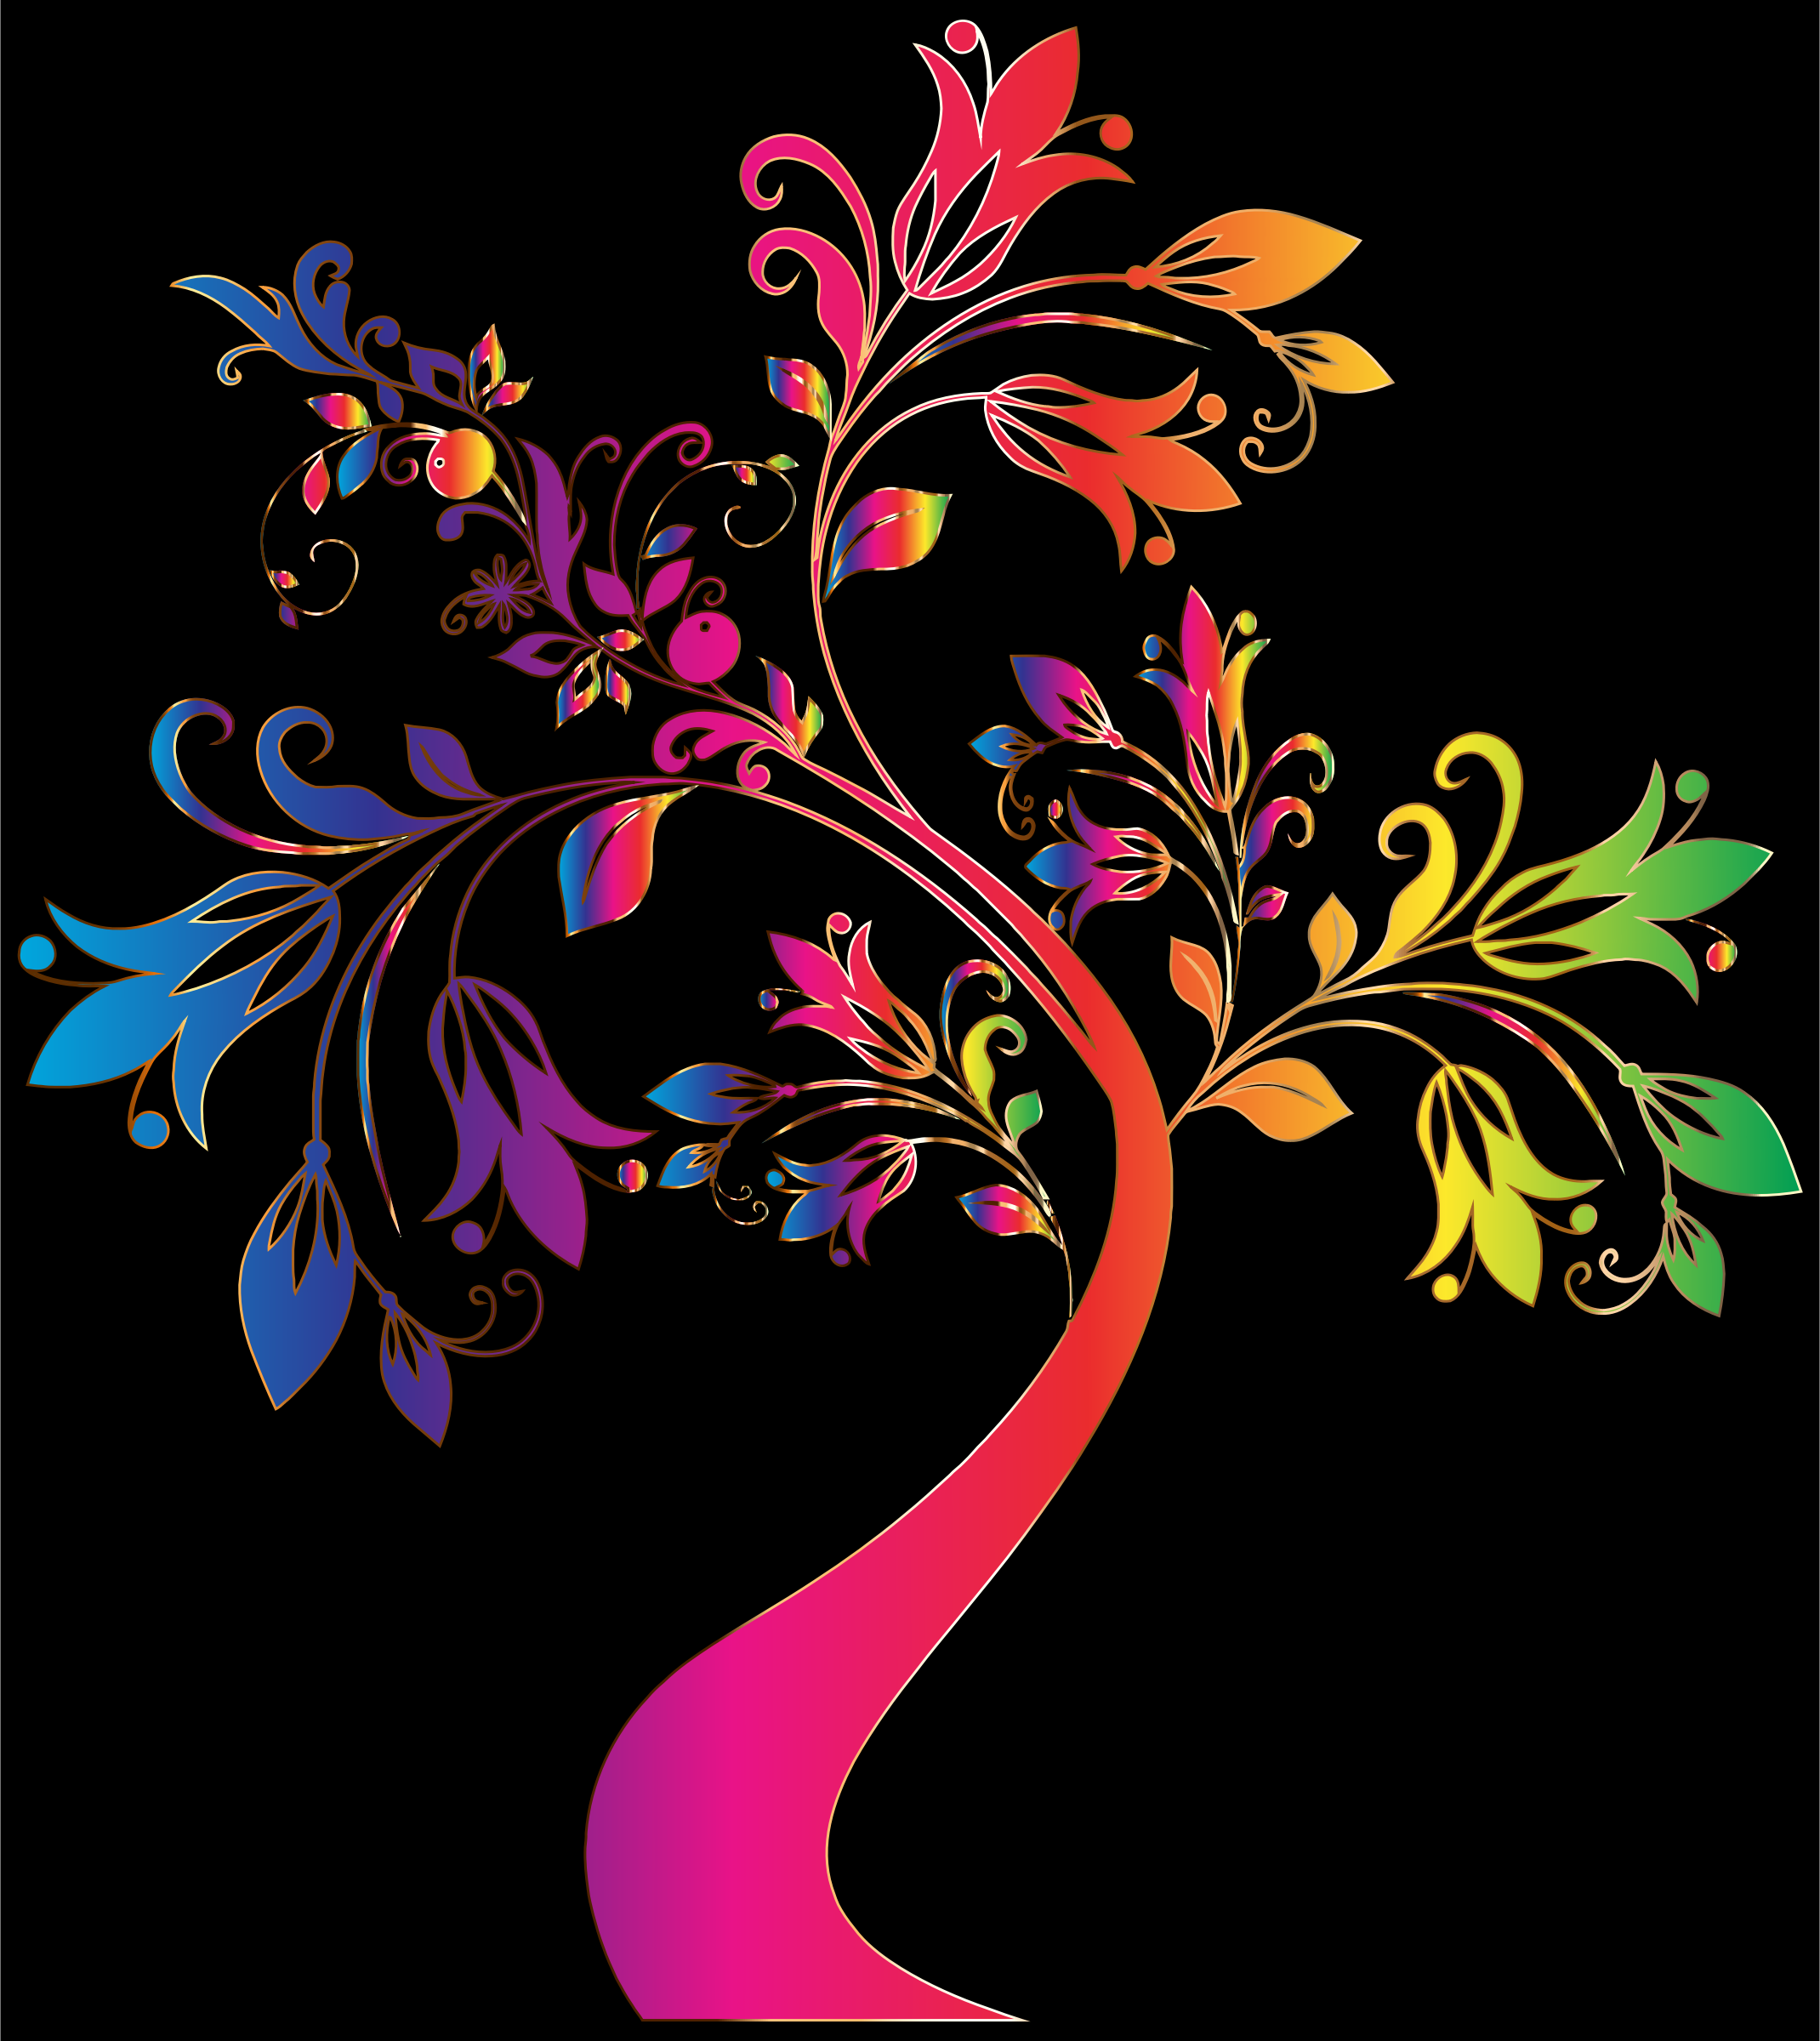 Colorful Floral Tree 8 by GDJ